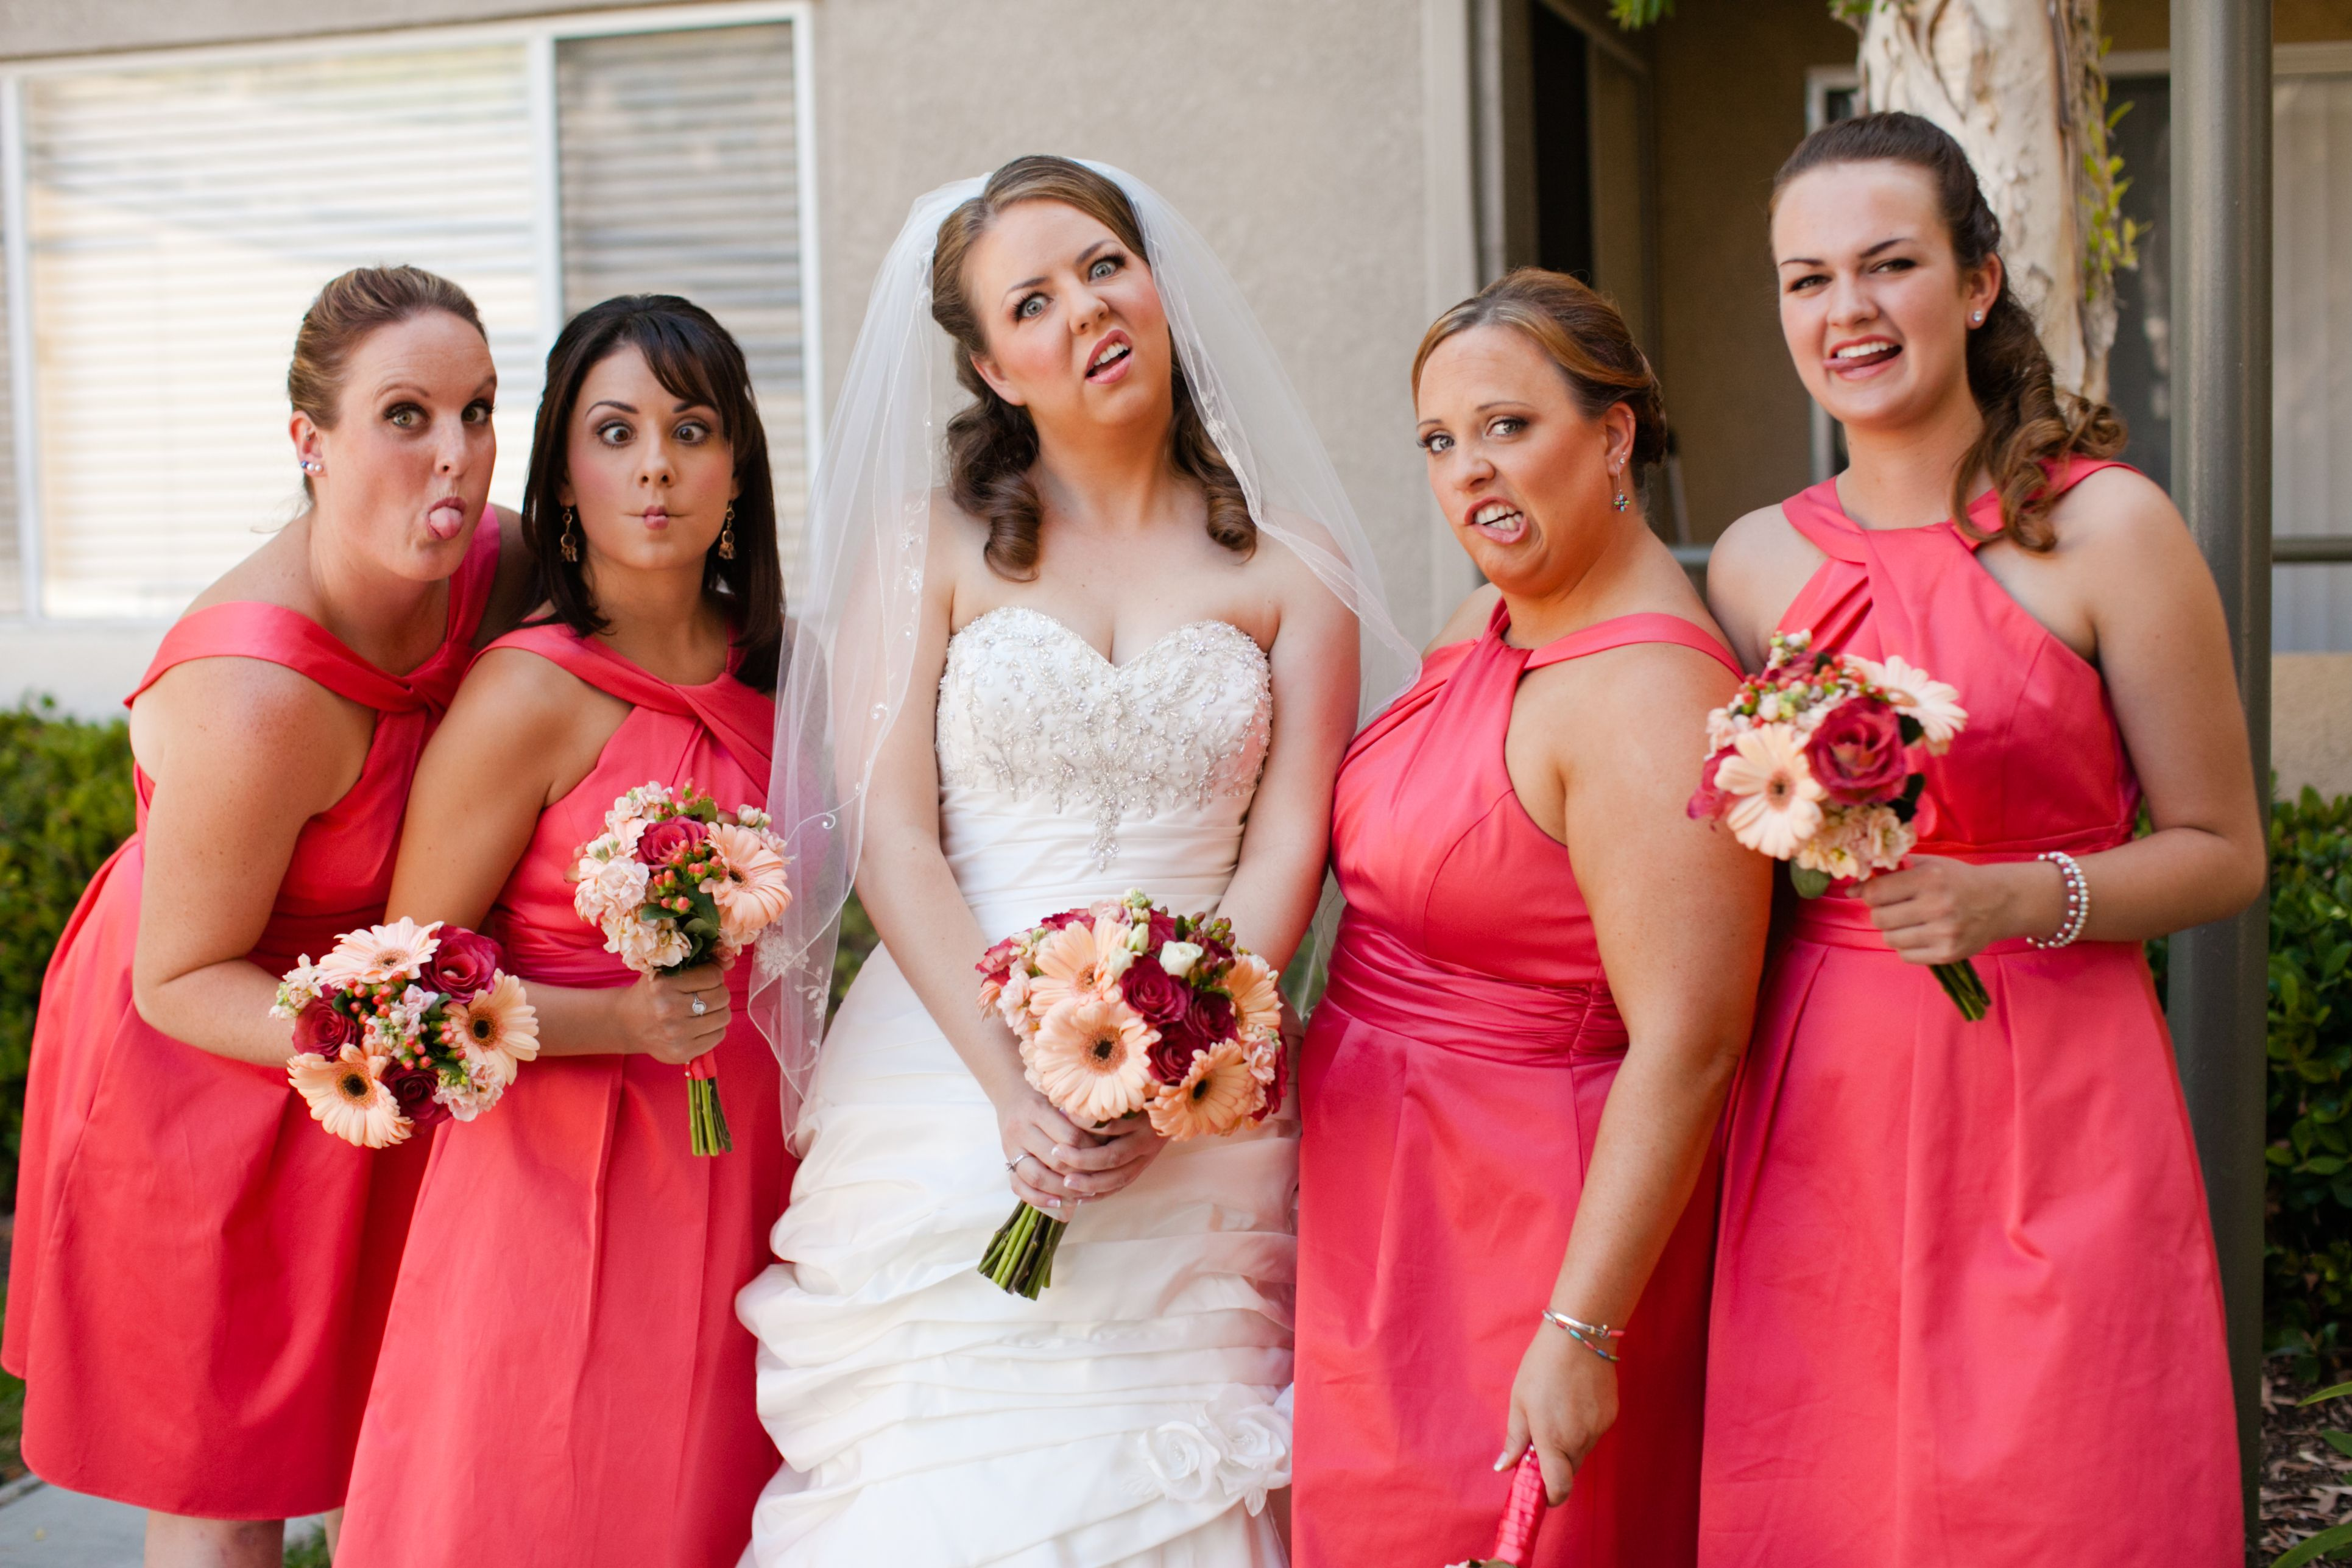 Funny  Unique  Silly Bridesmaid photo  Guava bridesmaid dresses from     Funny  Unique  Silly Bridesmaid photo  Guava bridesmaid dresses from David s  Bridal